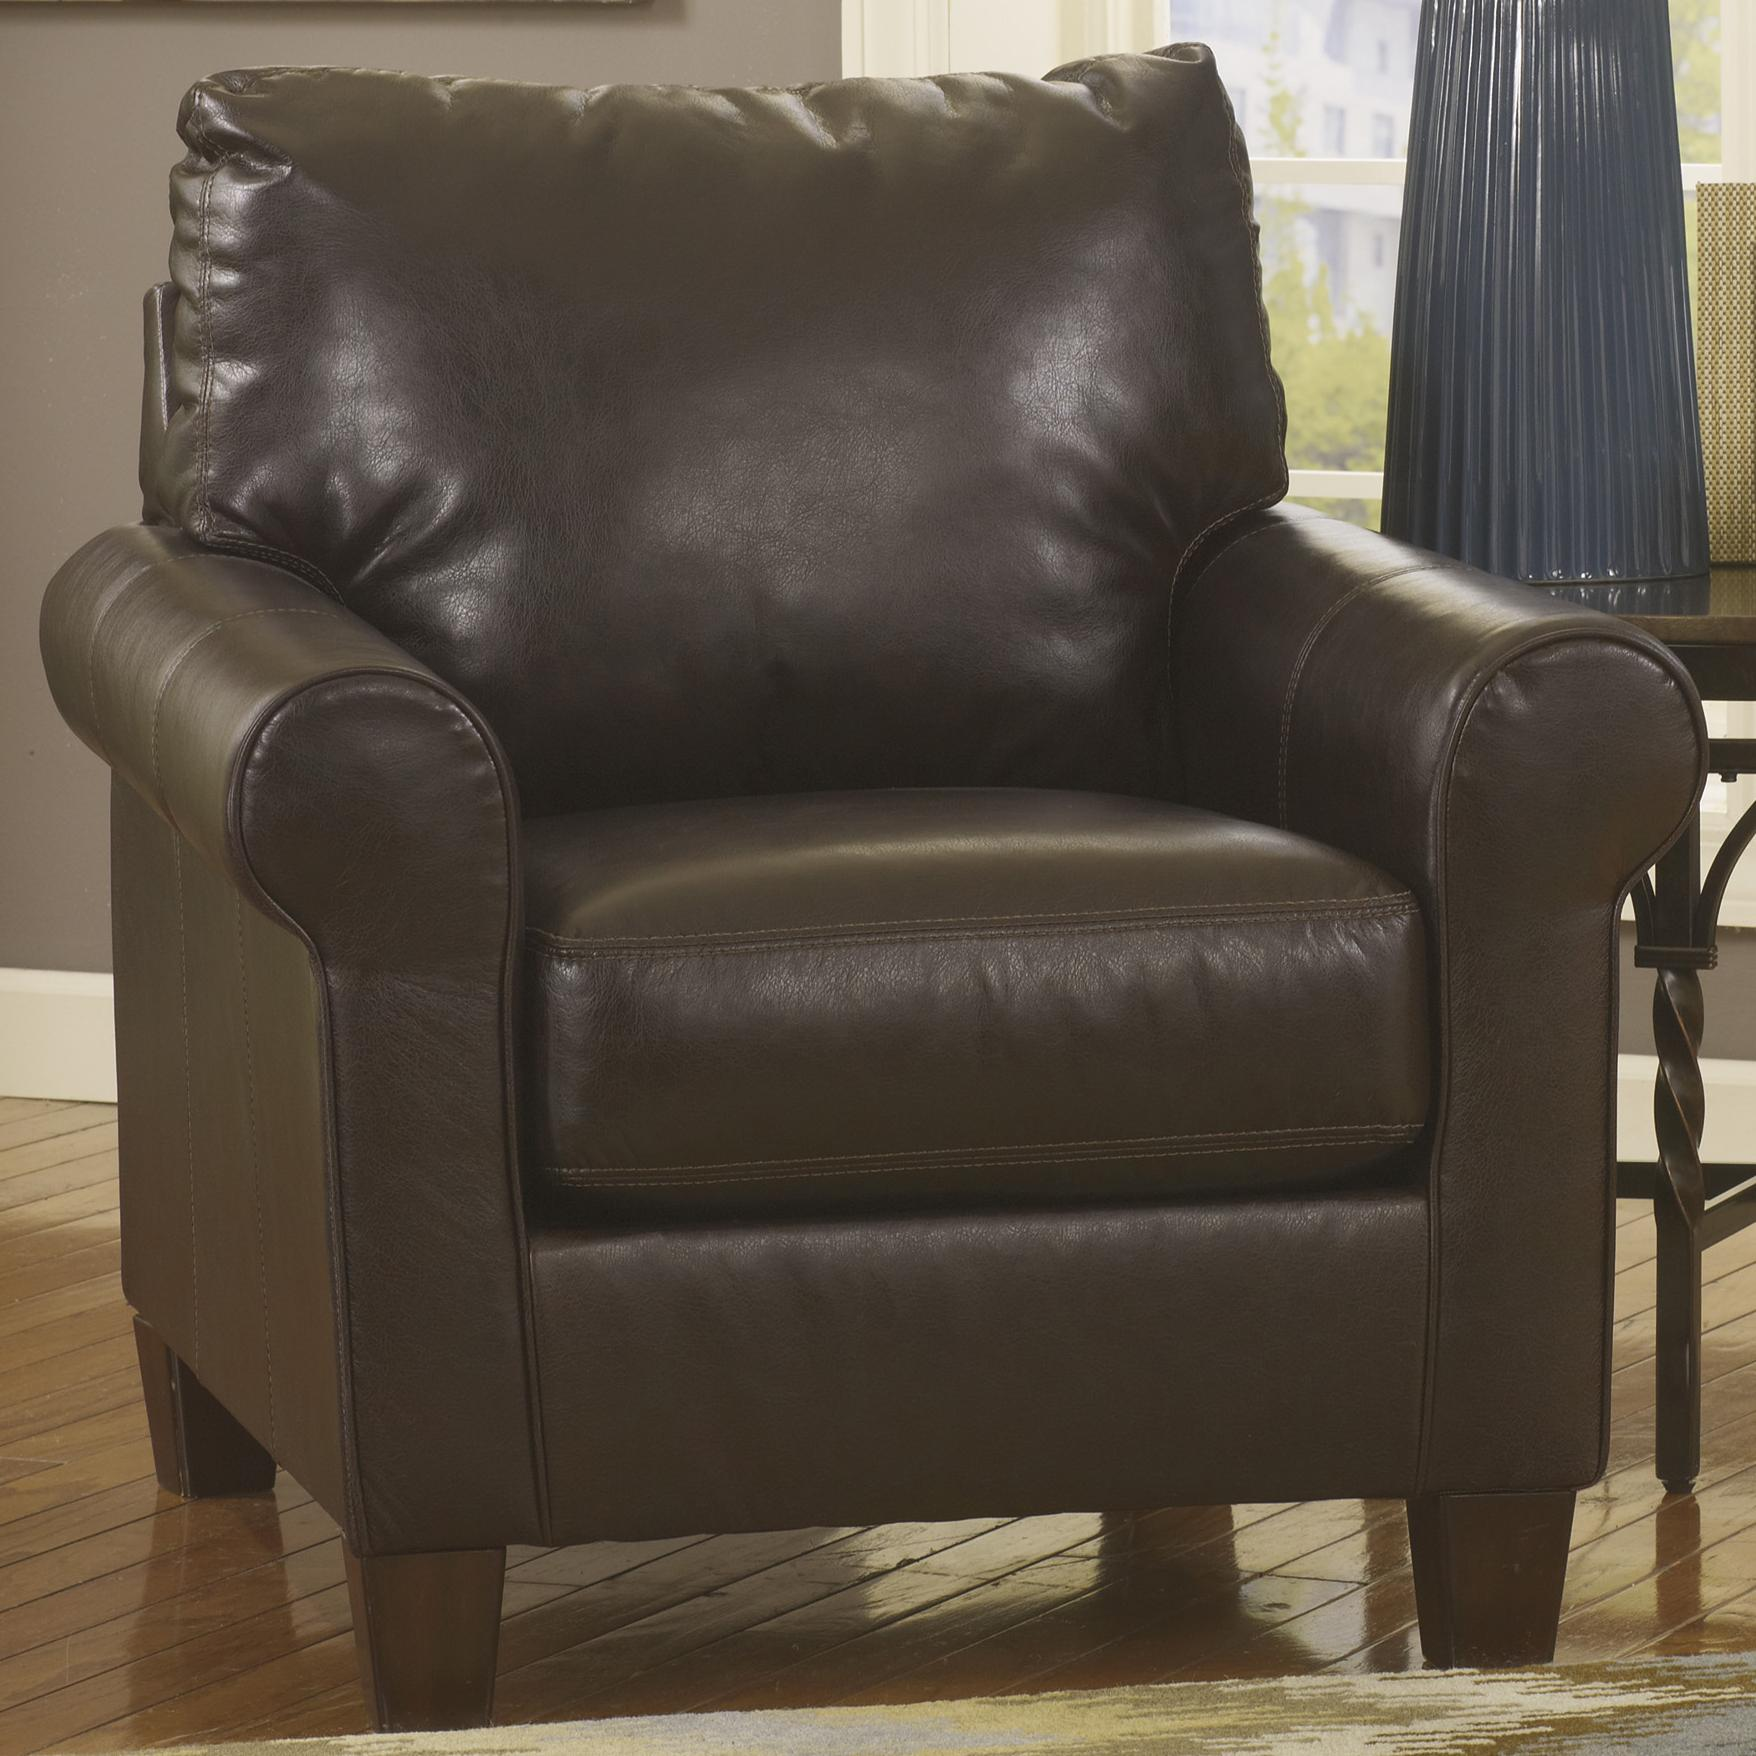 Benchcraft Nastas DuraBlend - Bark Chair - Item Number: 2330020